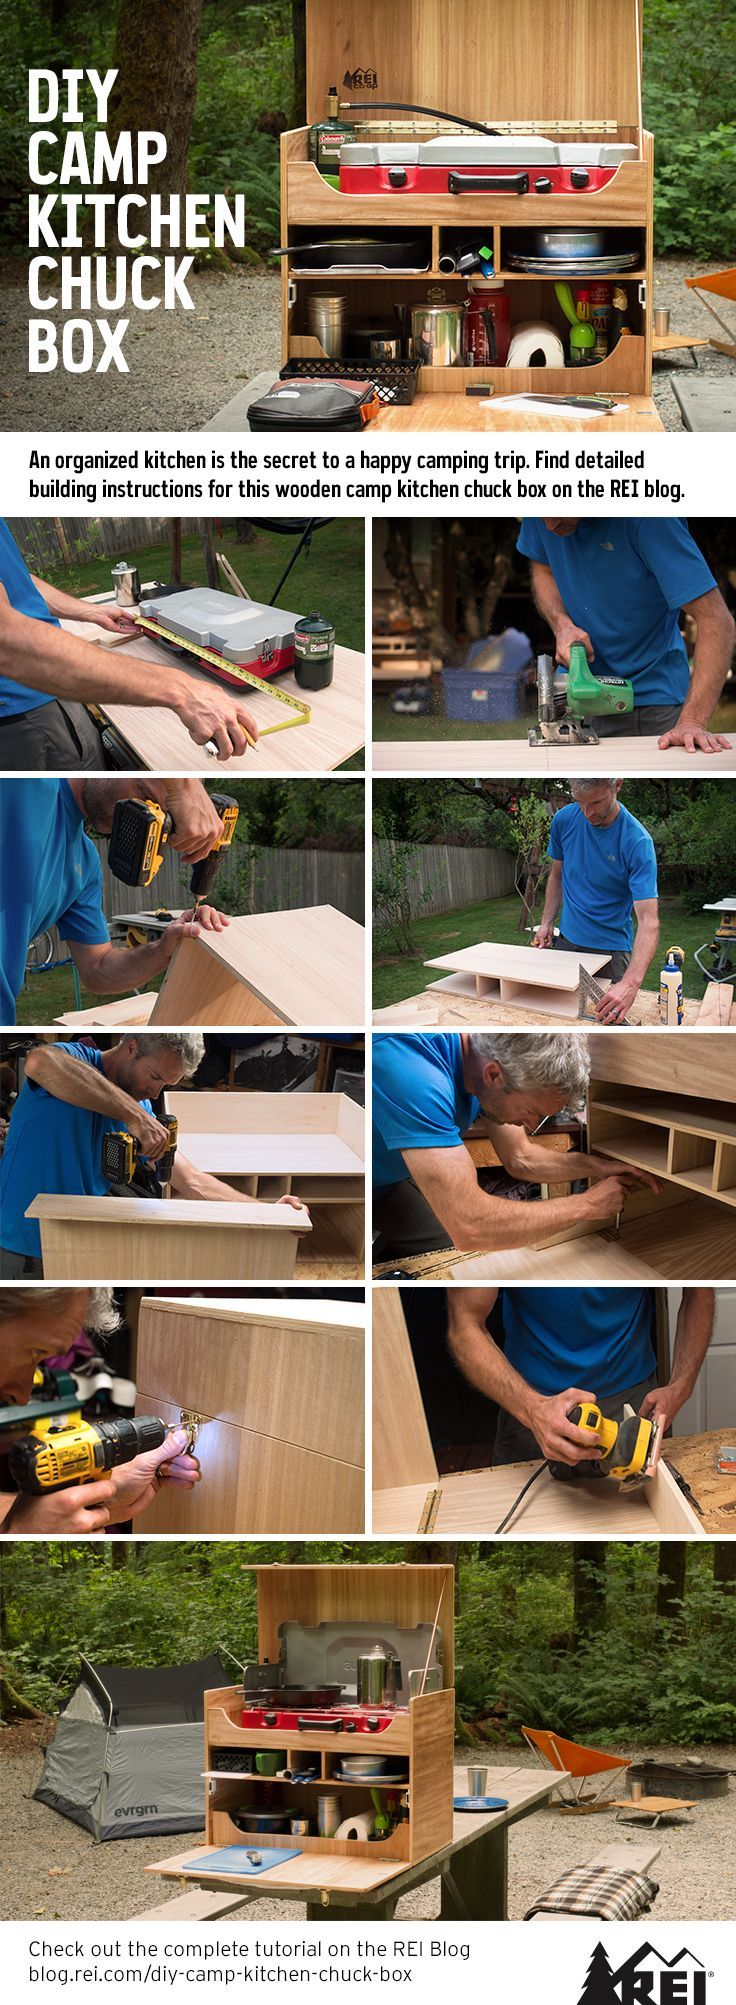 An organized kitchen is the secret to a happy camping trip. Build your own wooden